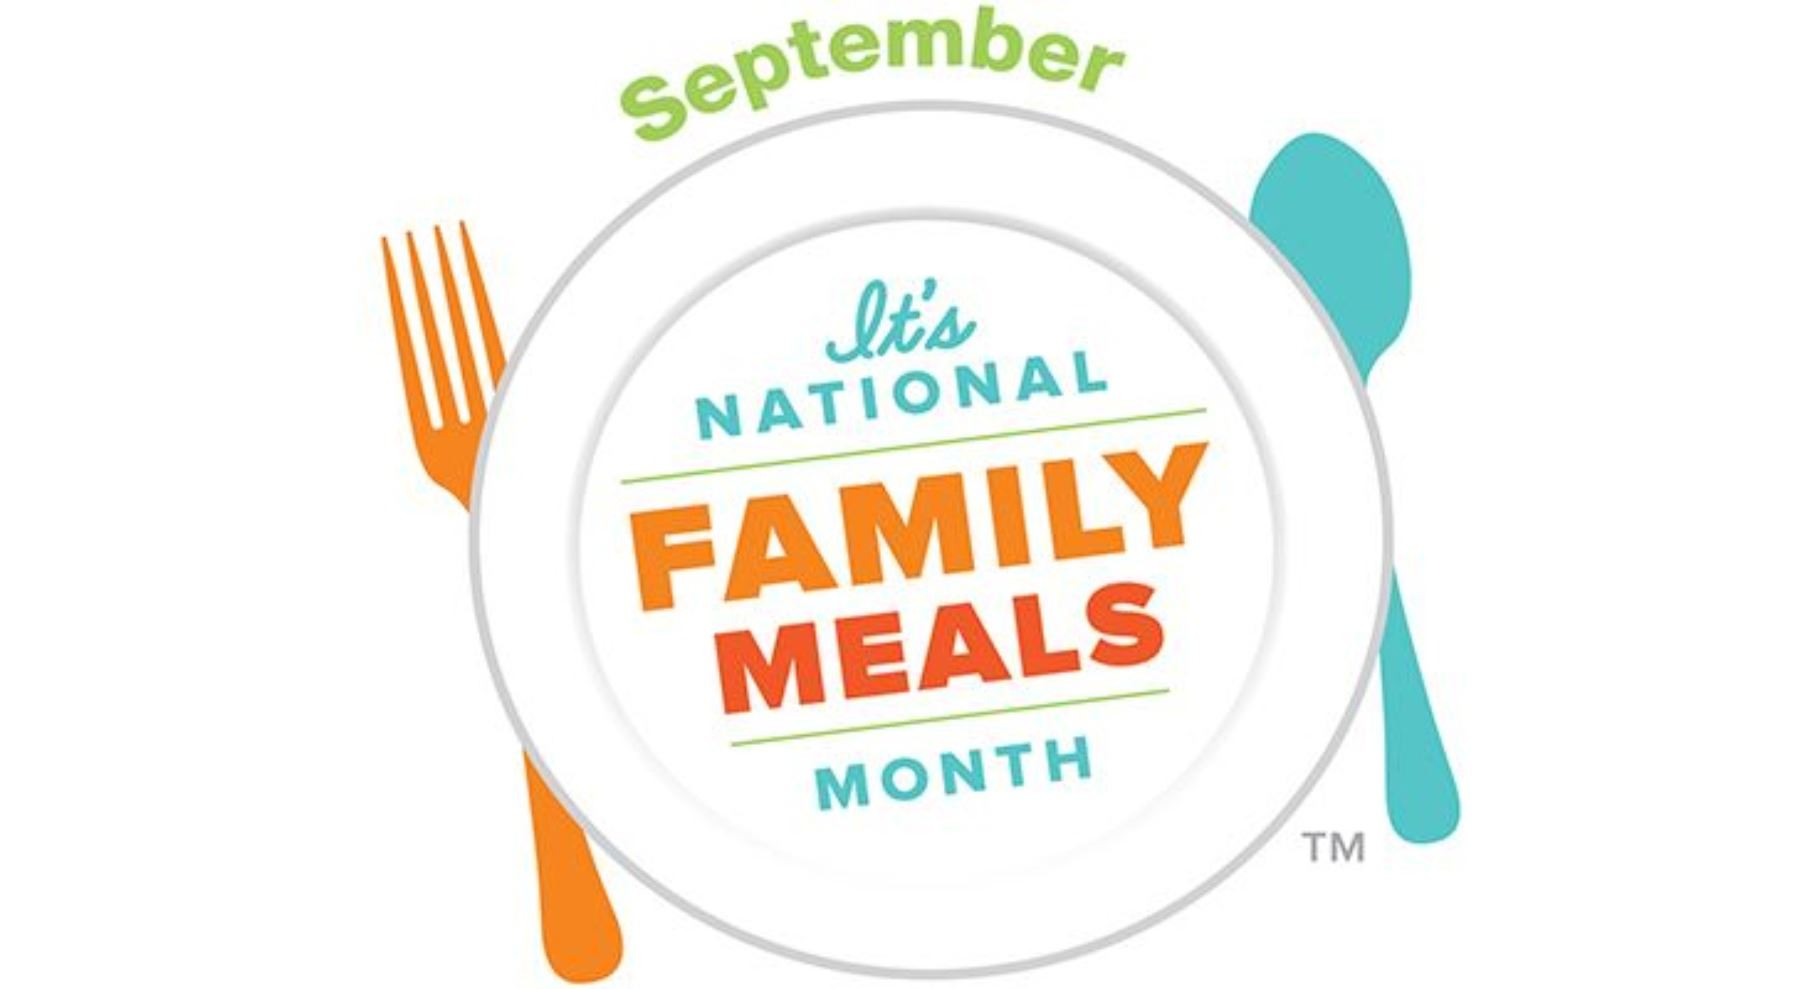 September Natl Family Meals Month